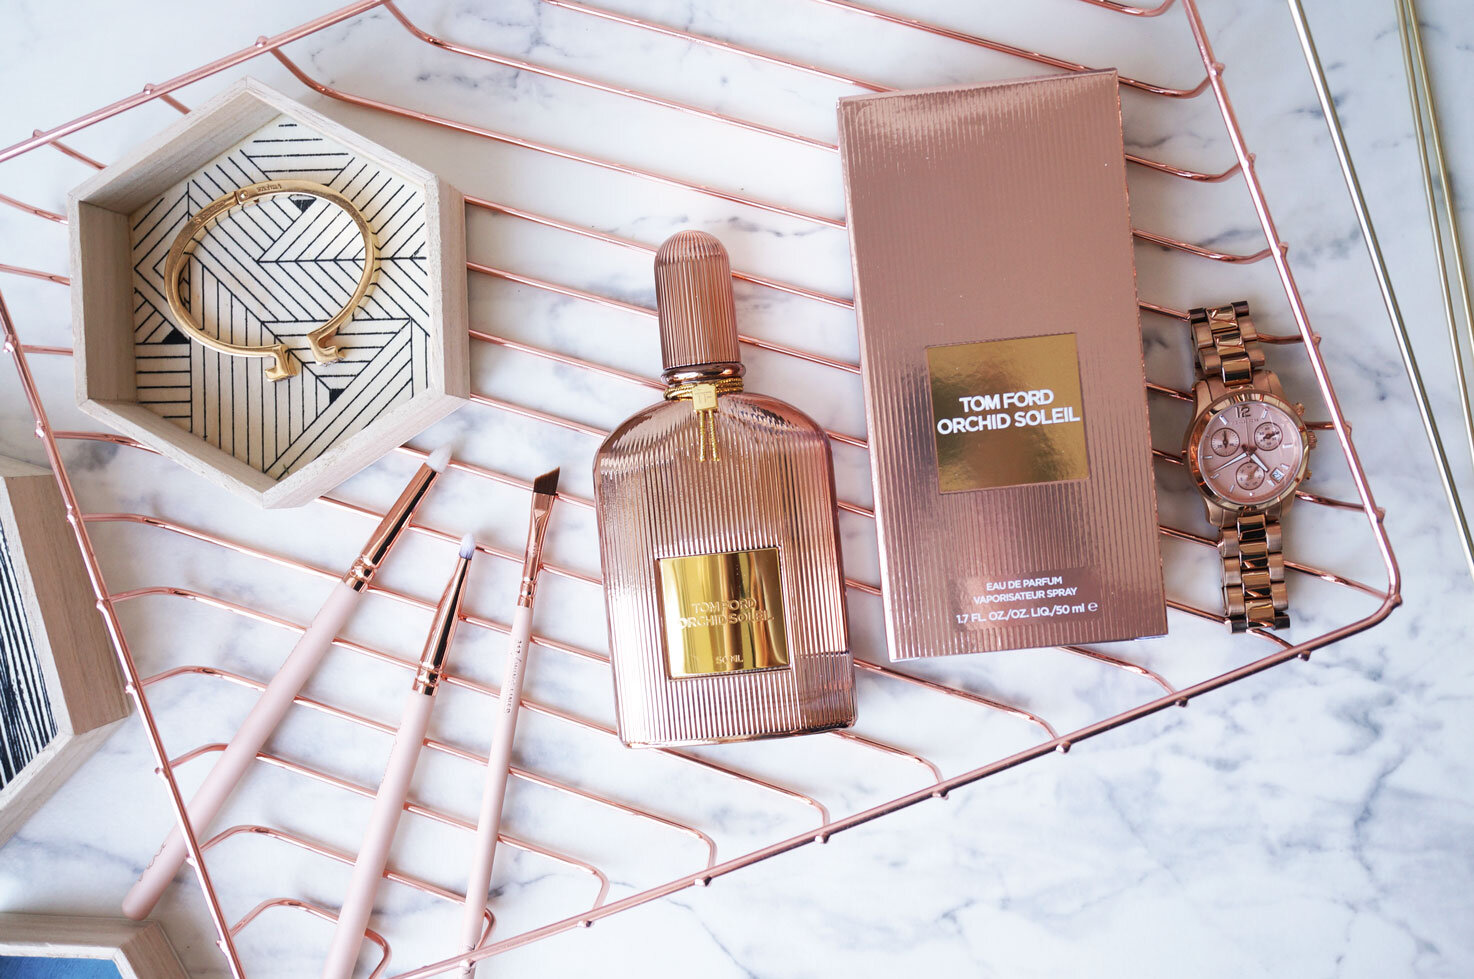 Review nước hoa nữ Tom Ford Orchid Soleil